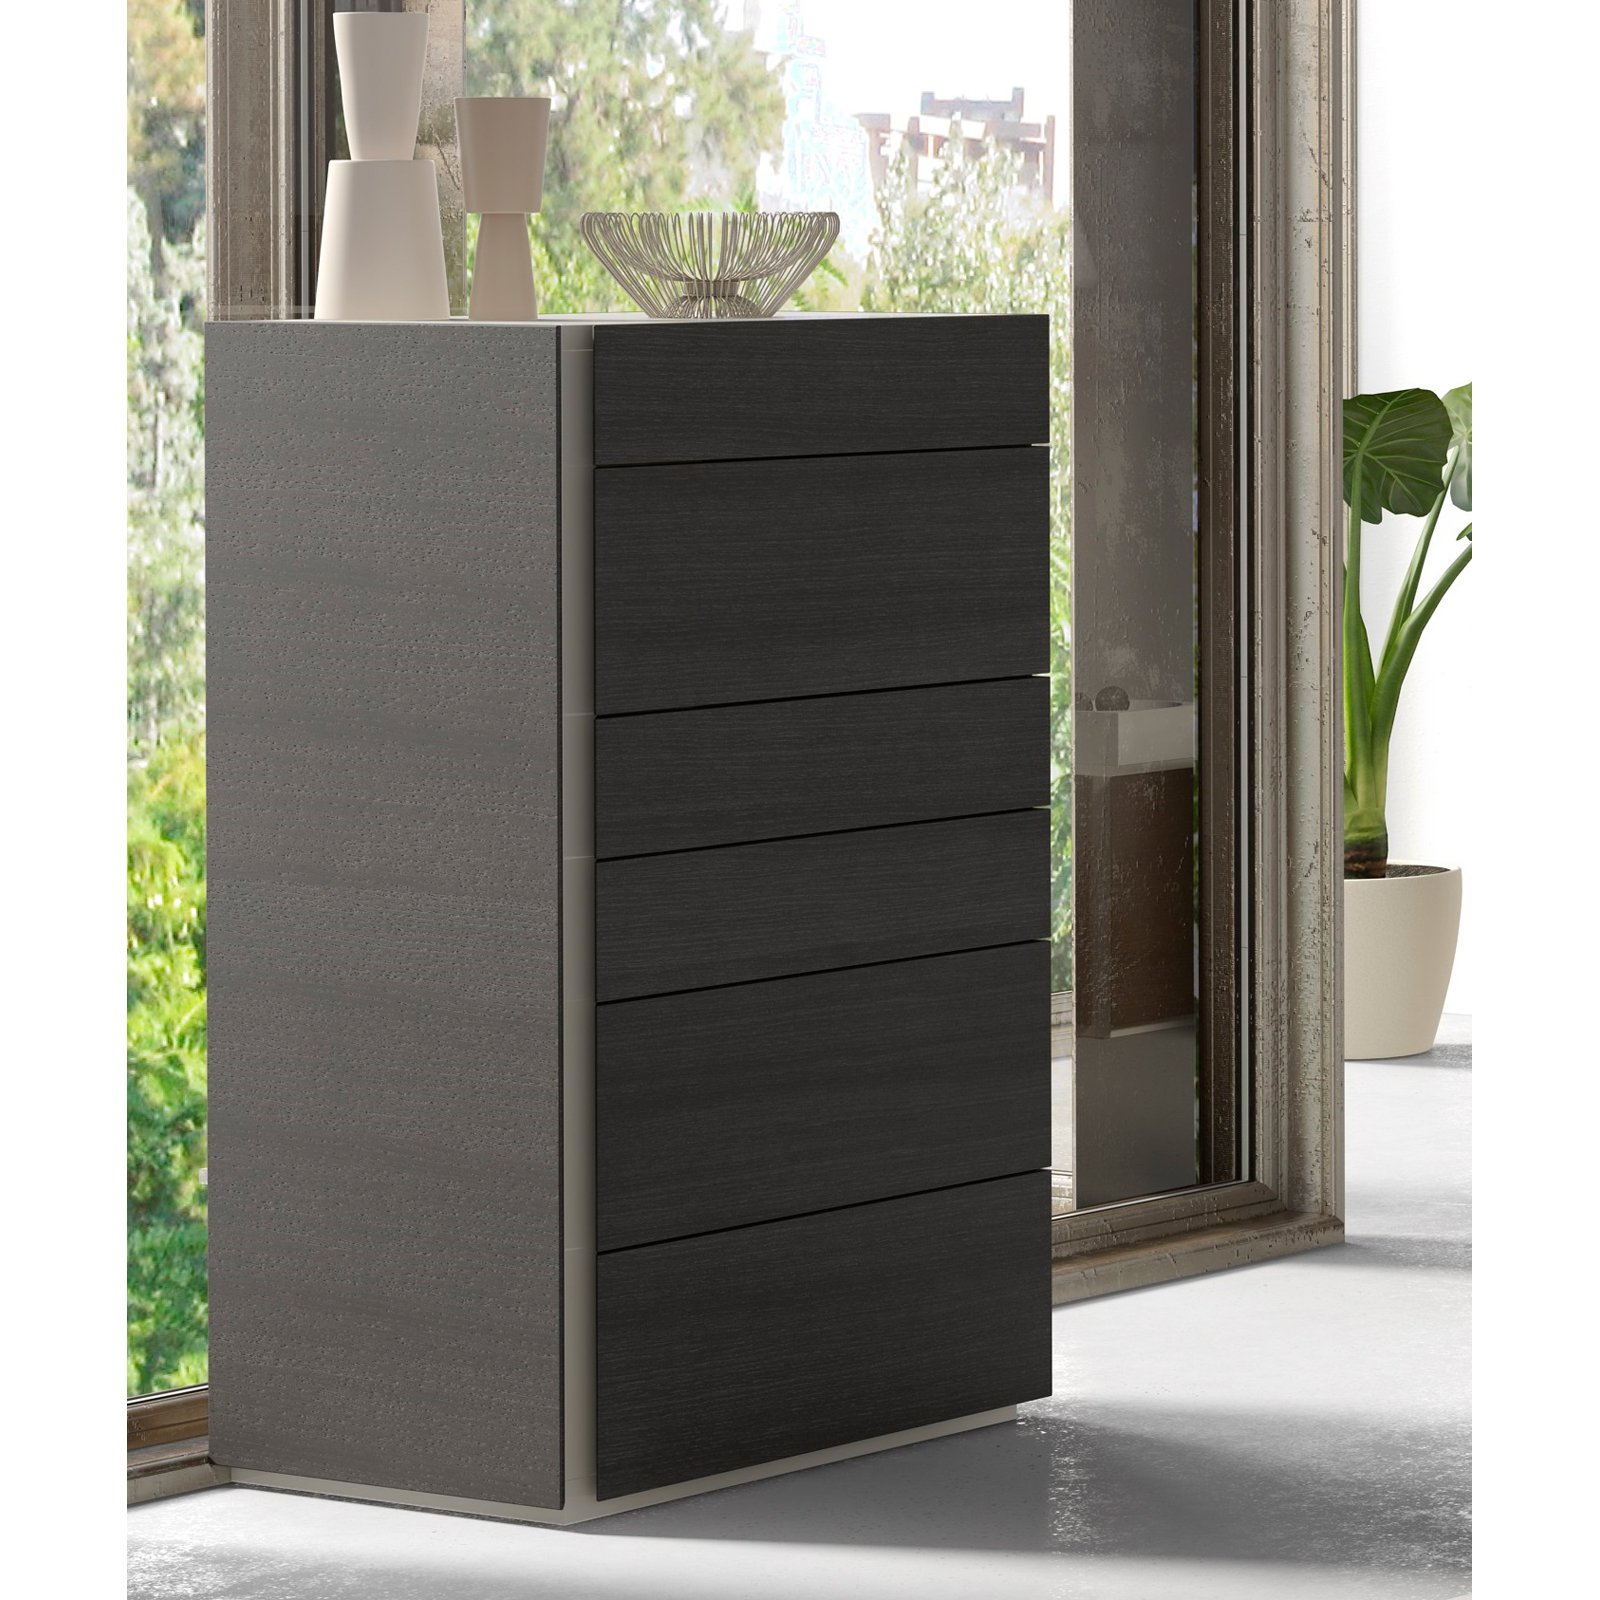 J&M Furniture Faro 6 Drawer Chest